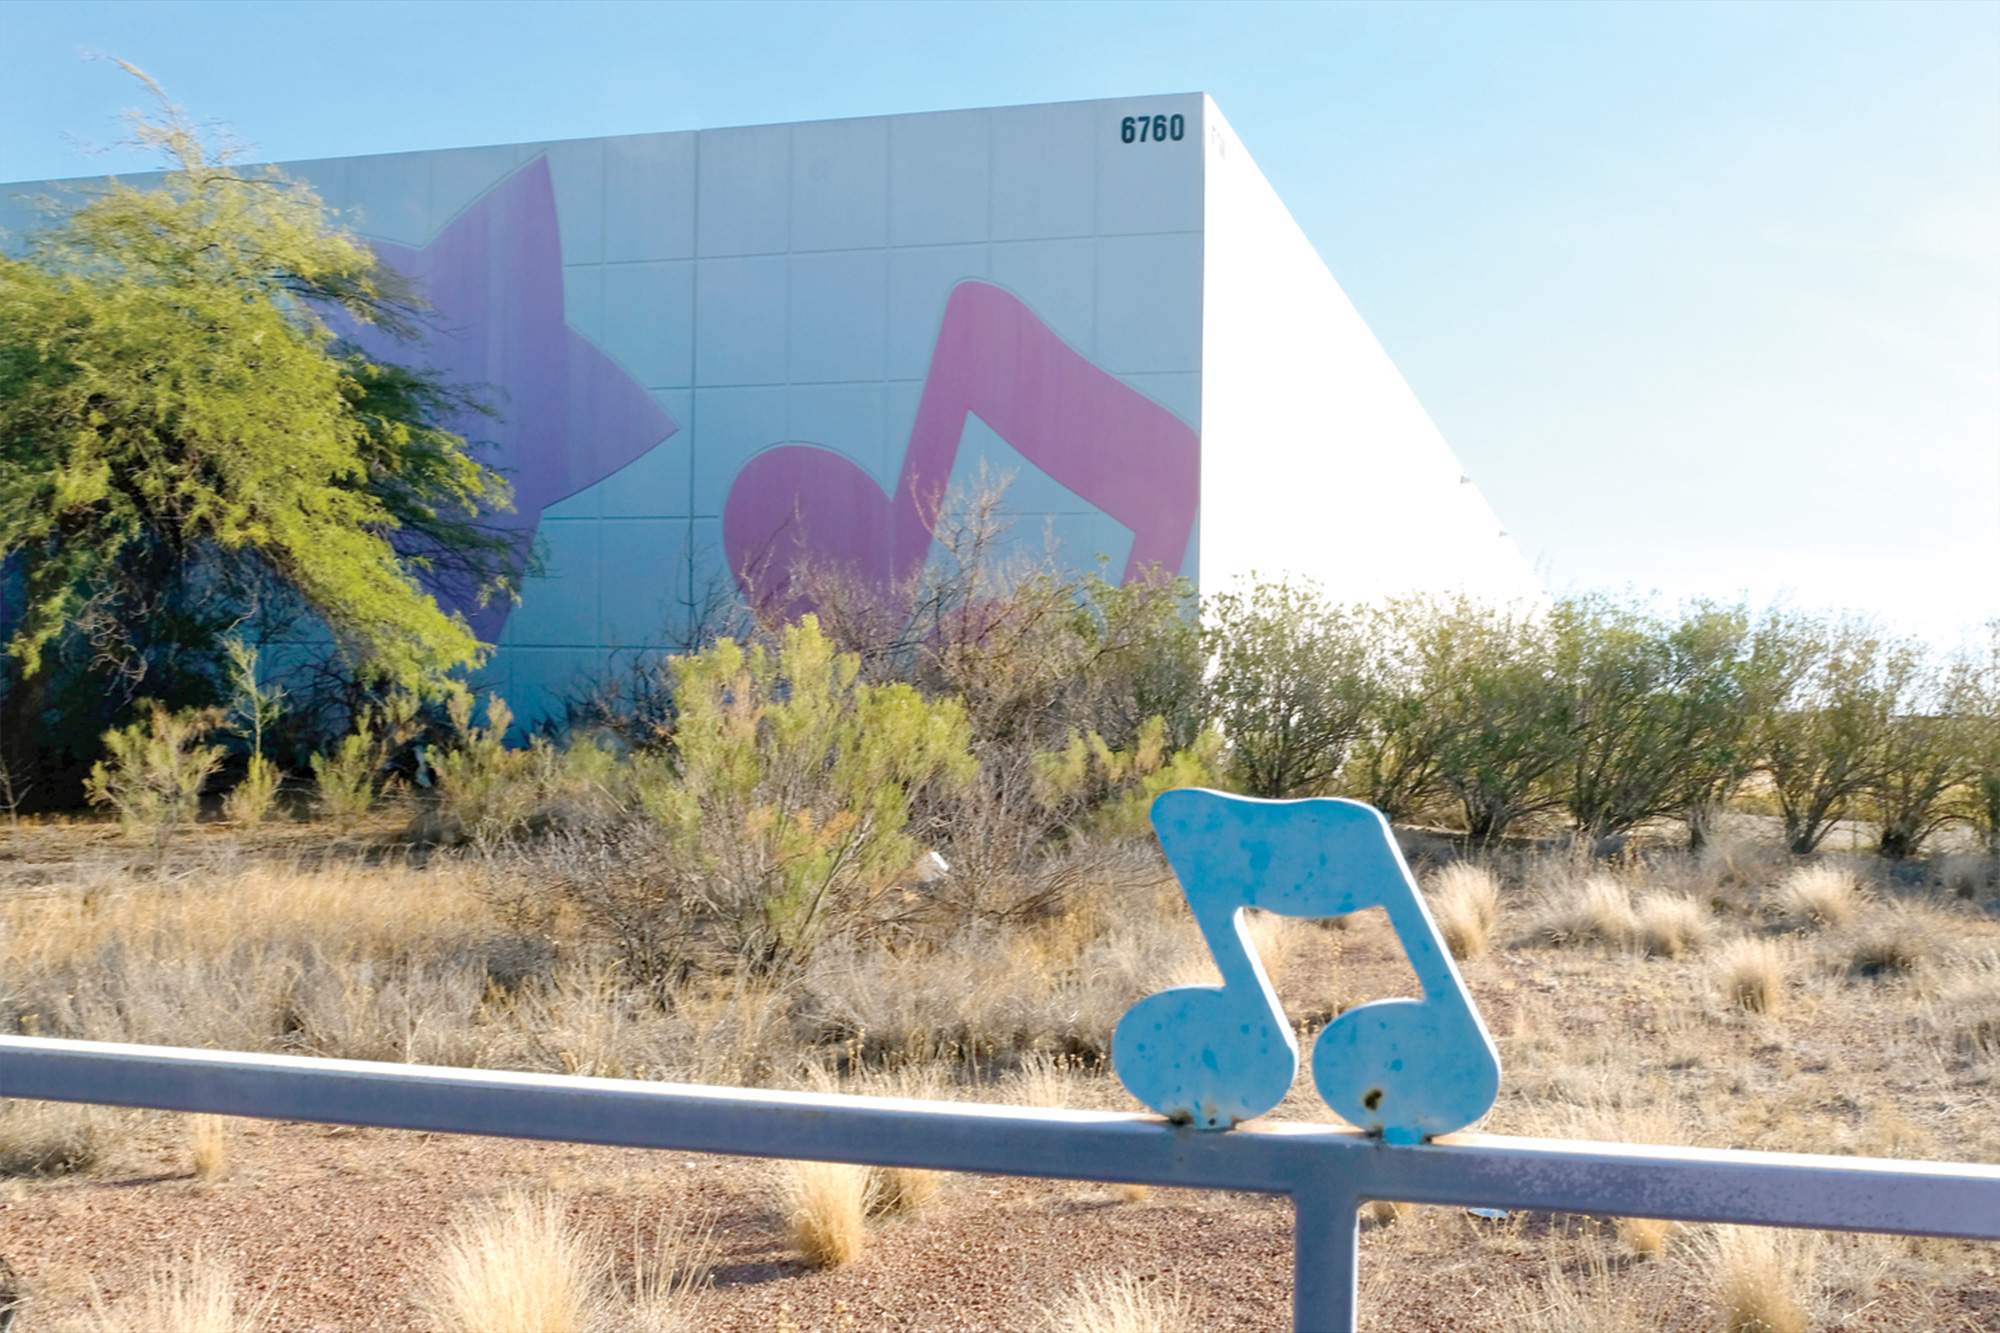 Lisa Frank factory; Photo by Eric Cox